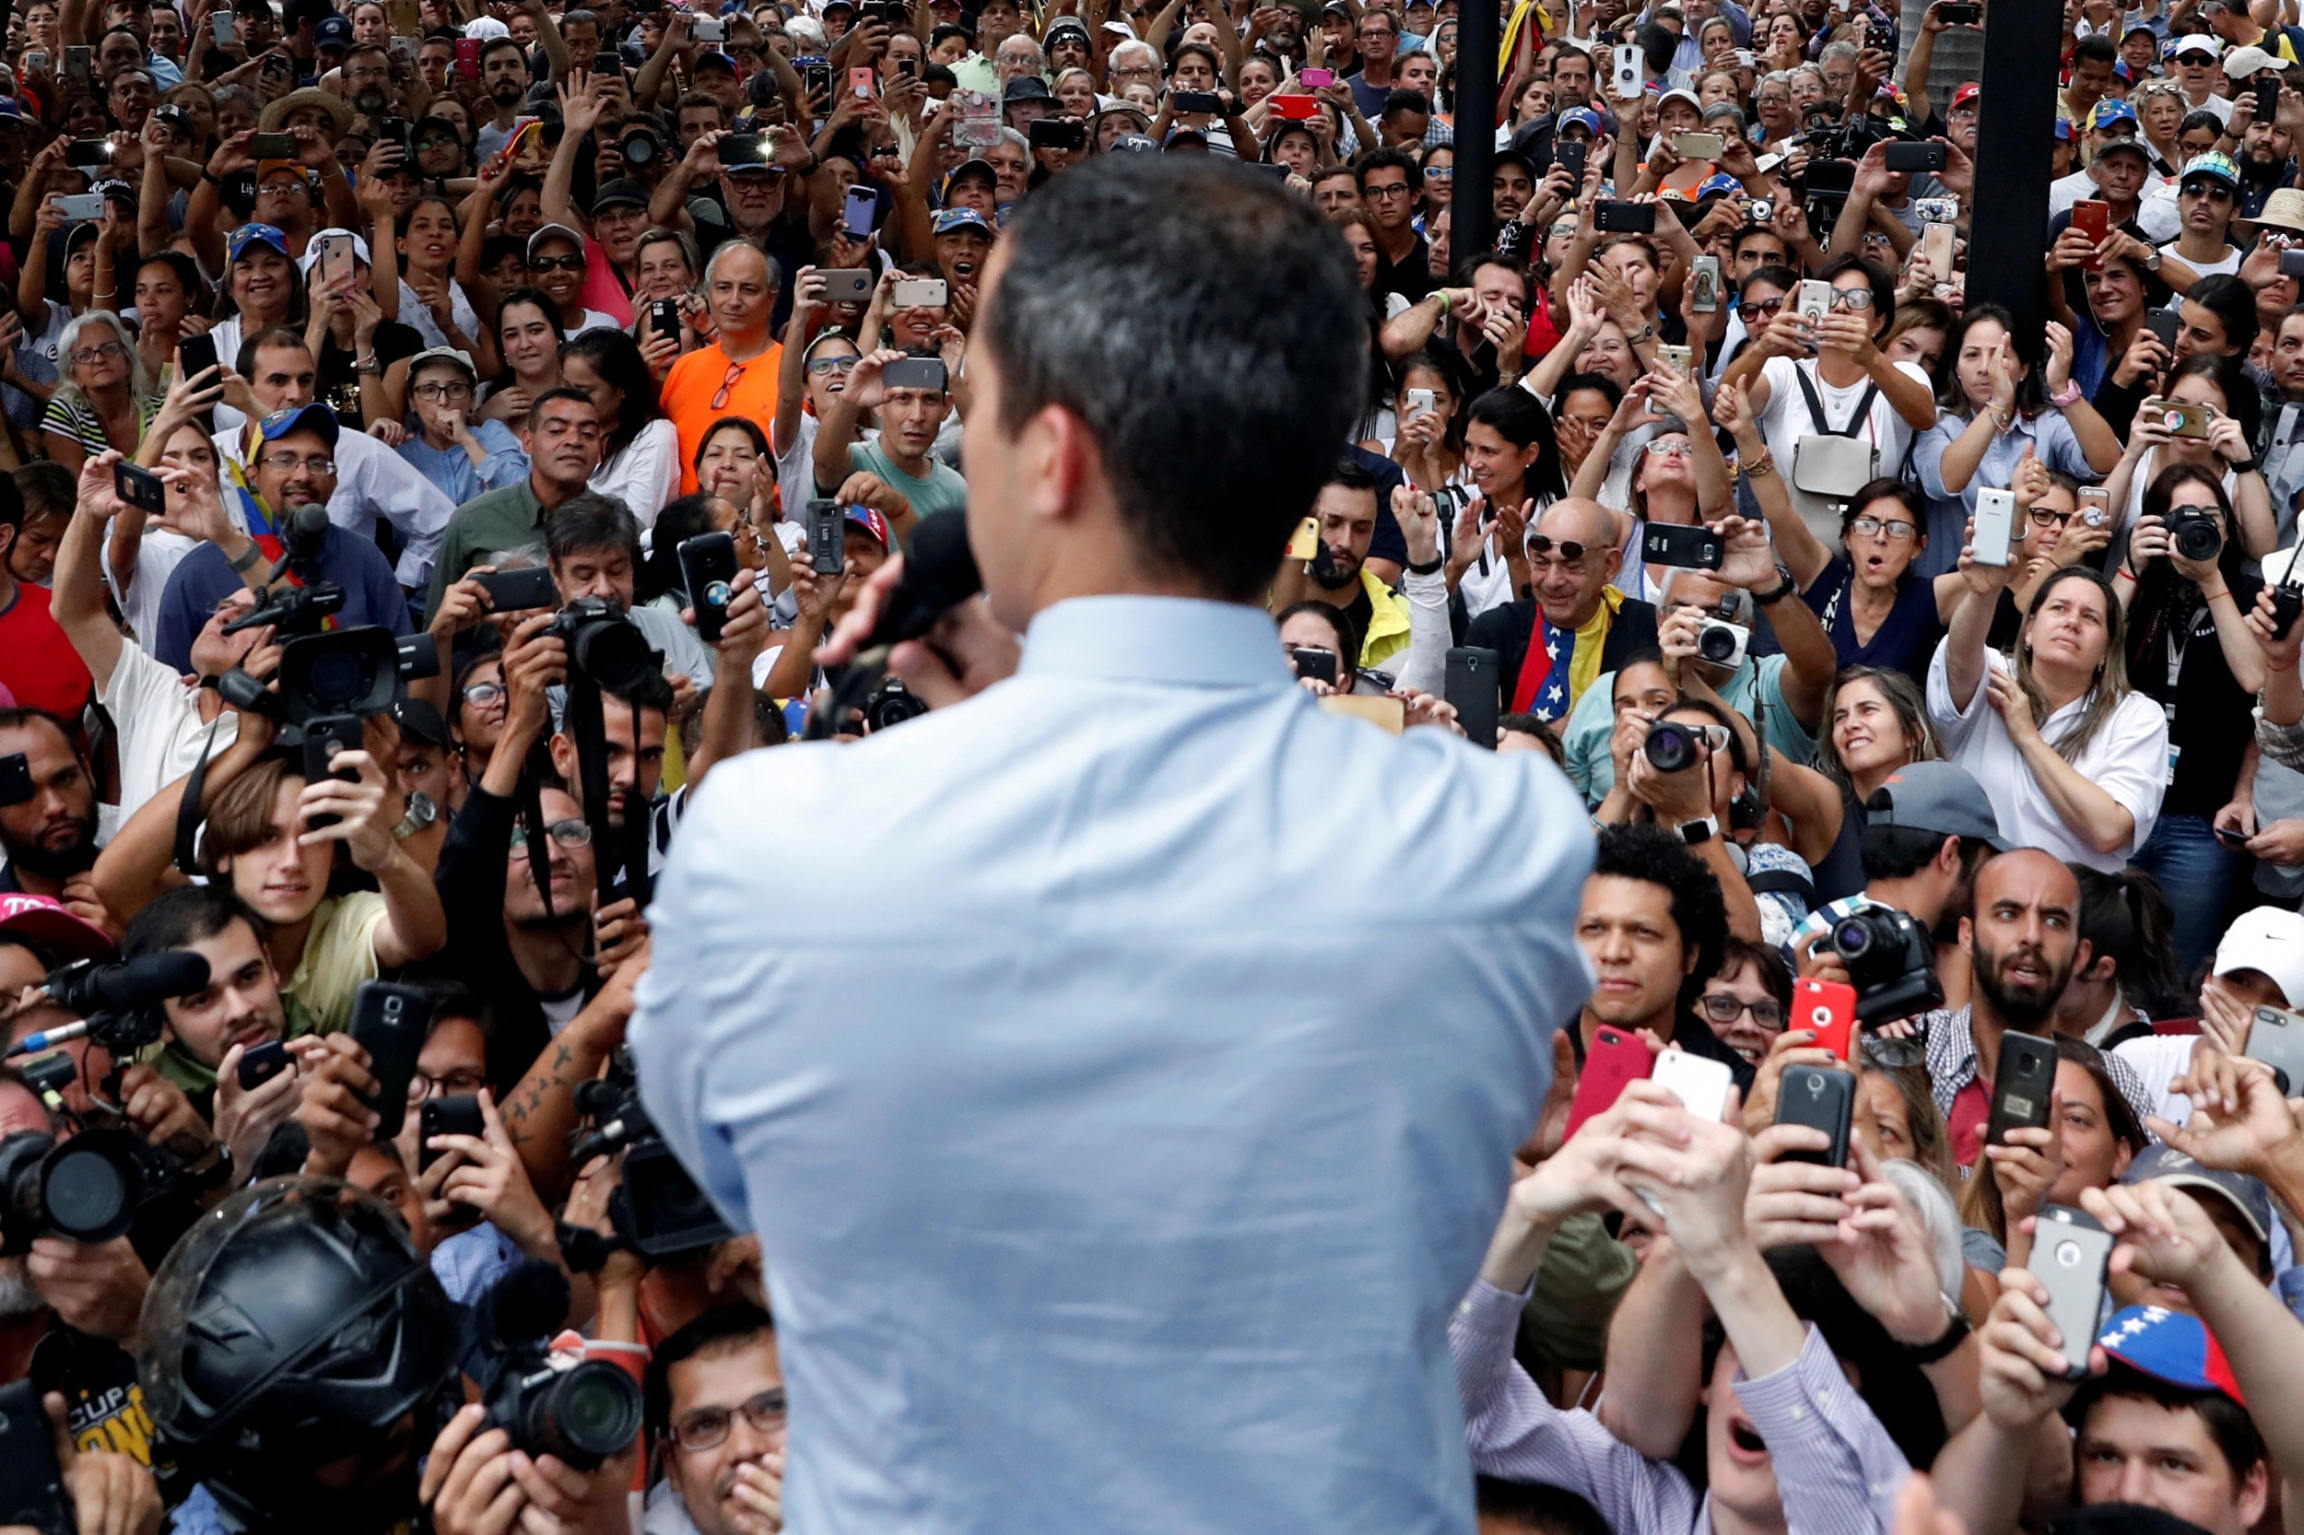 Venezuelan opposition leader Juan Guaidó is shown from behind while looking out on a large crowd.